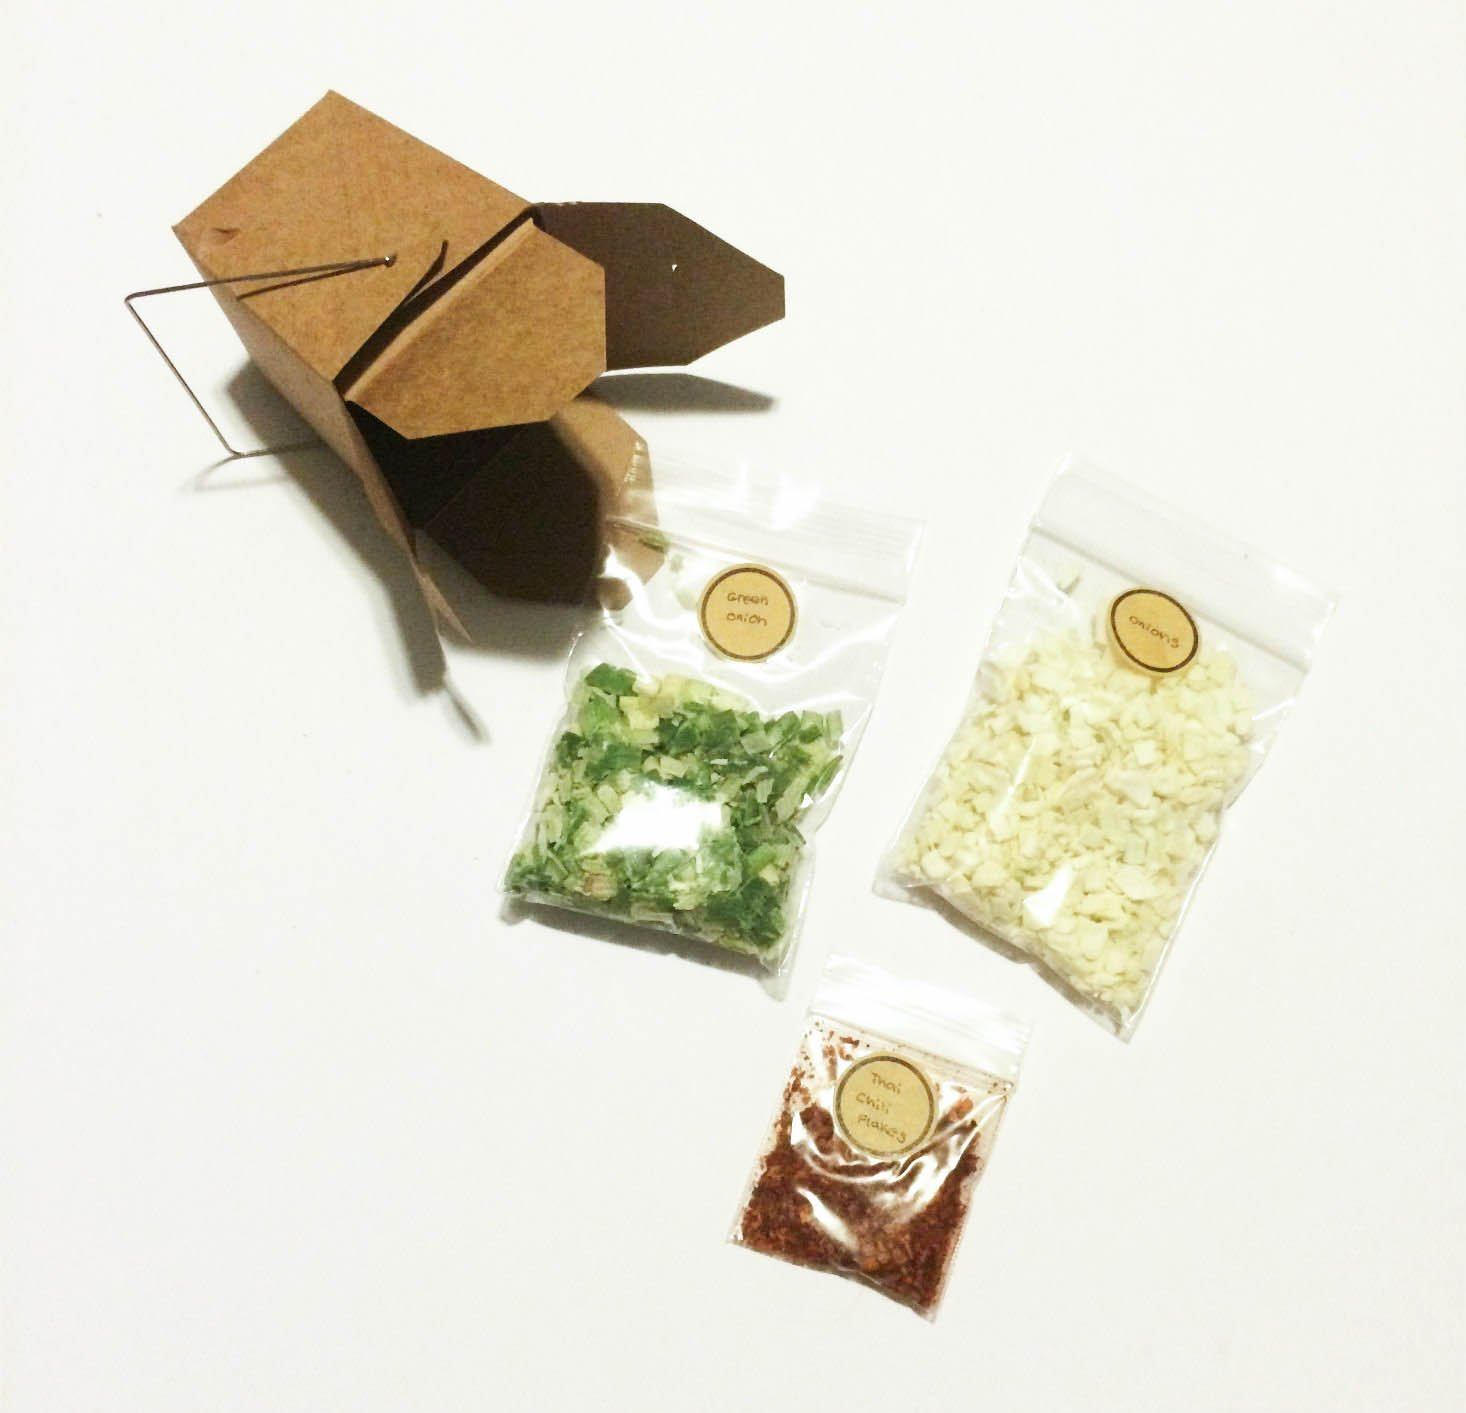 takeout-kit-meal-subscription-august-2016-vegetables